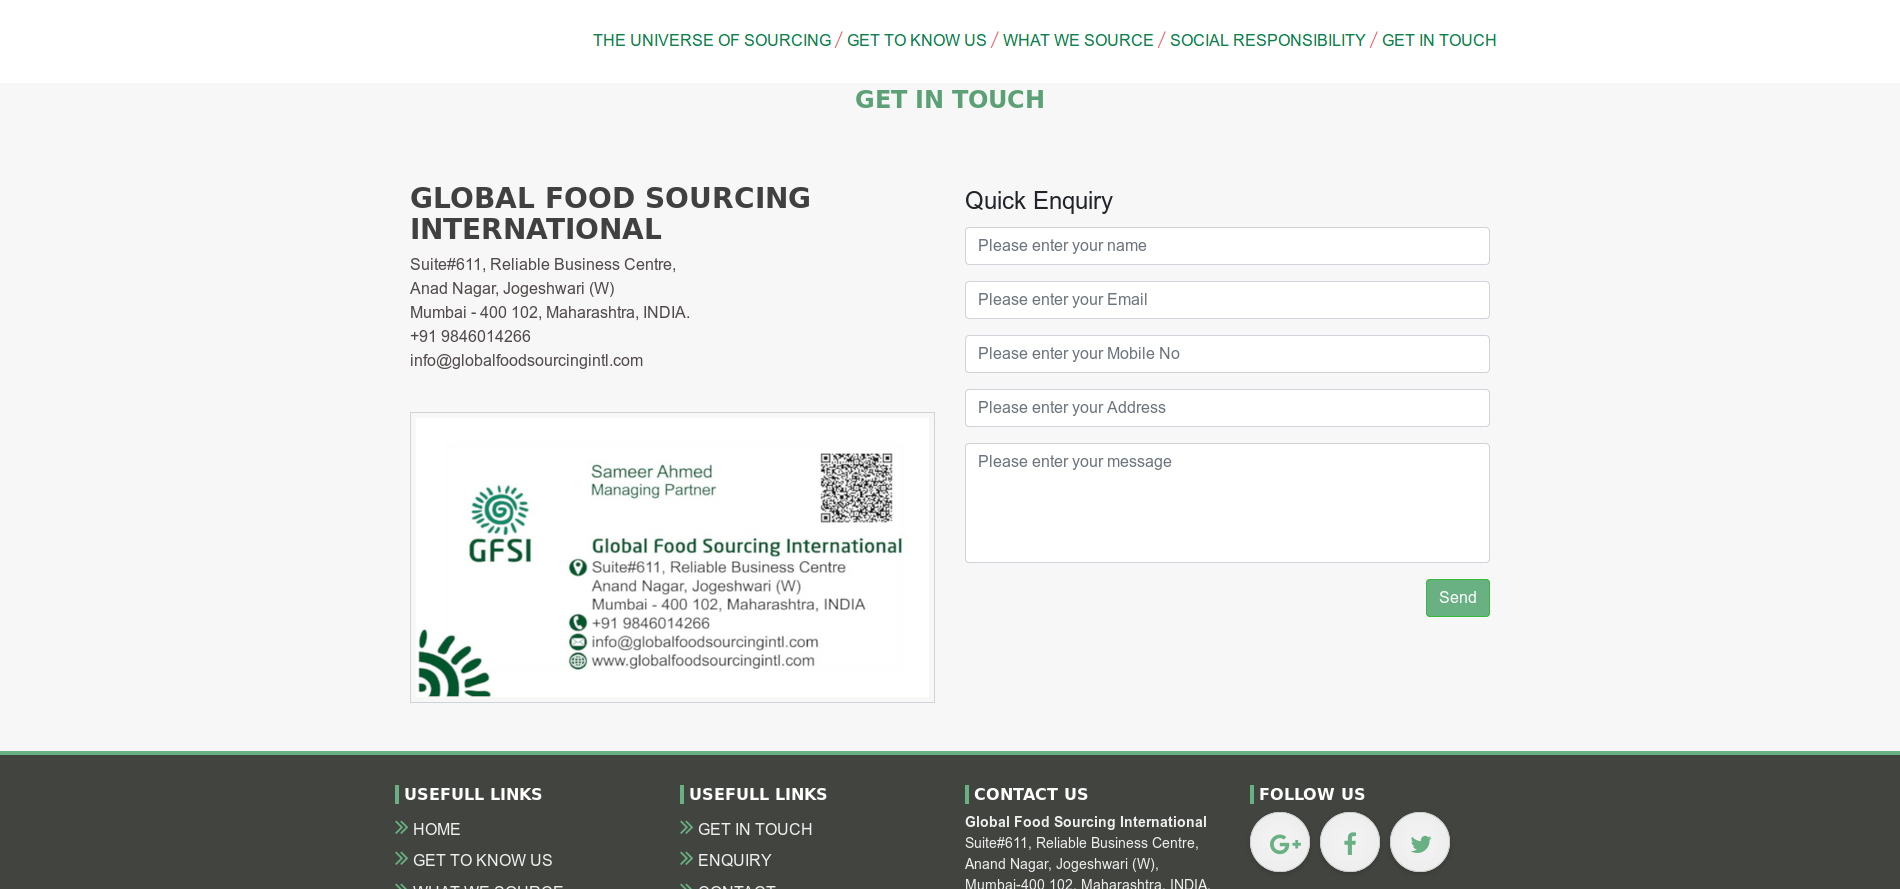 Global Food Sourcing